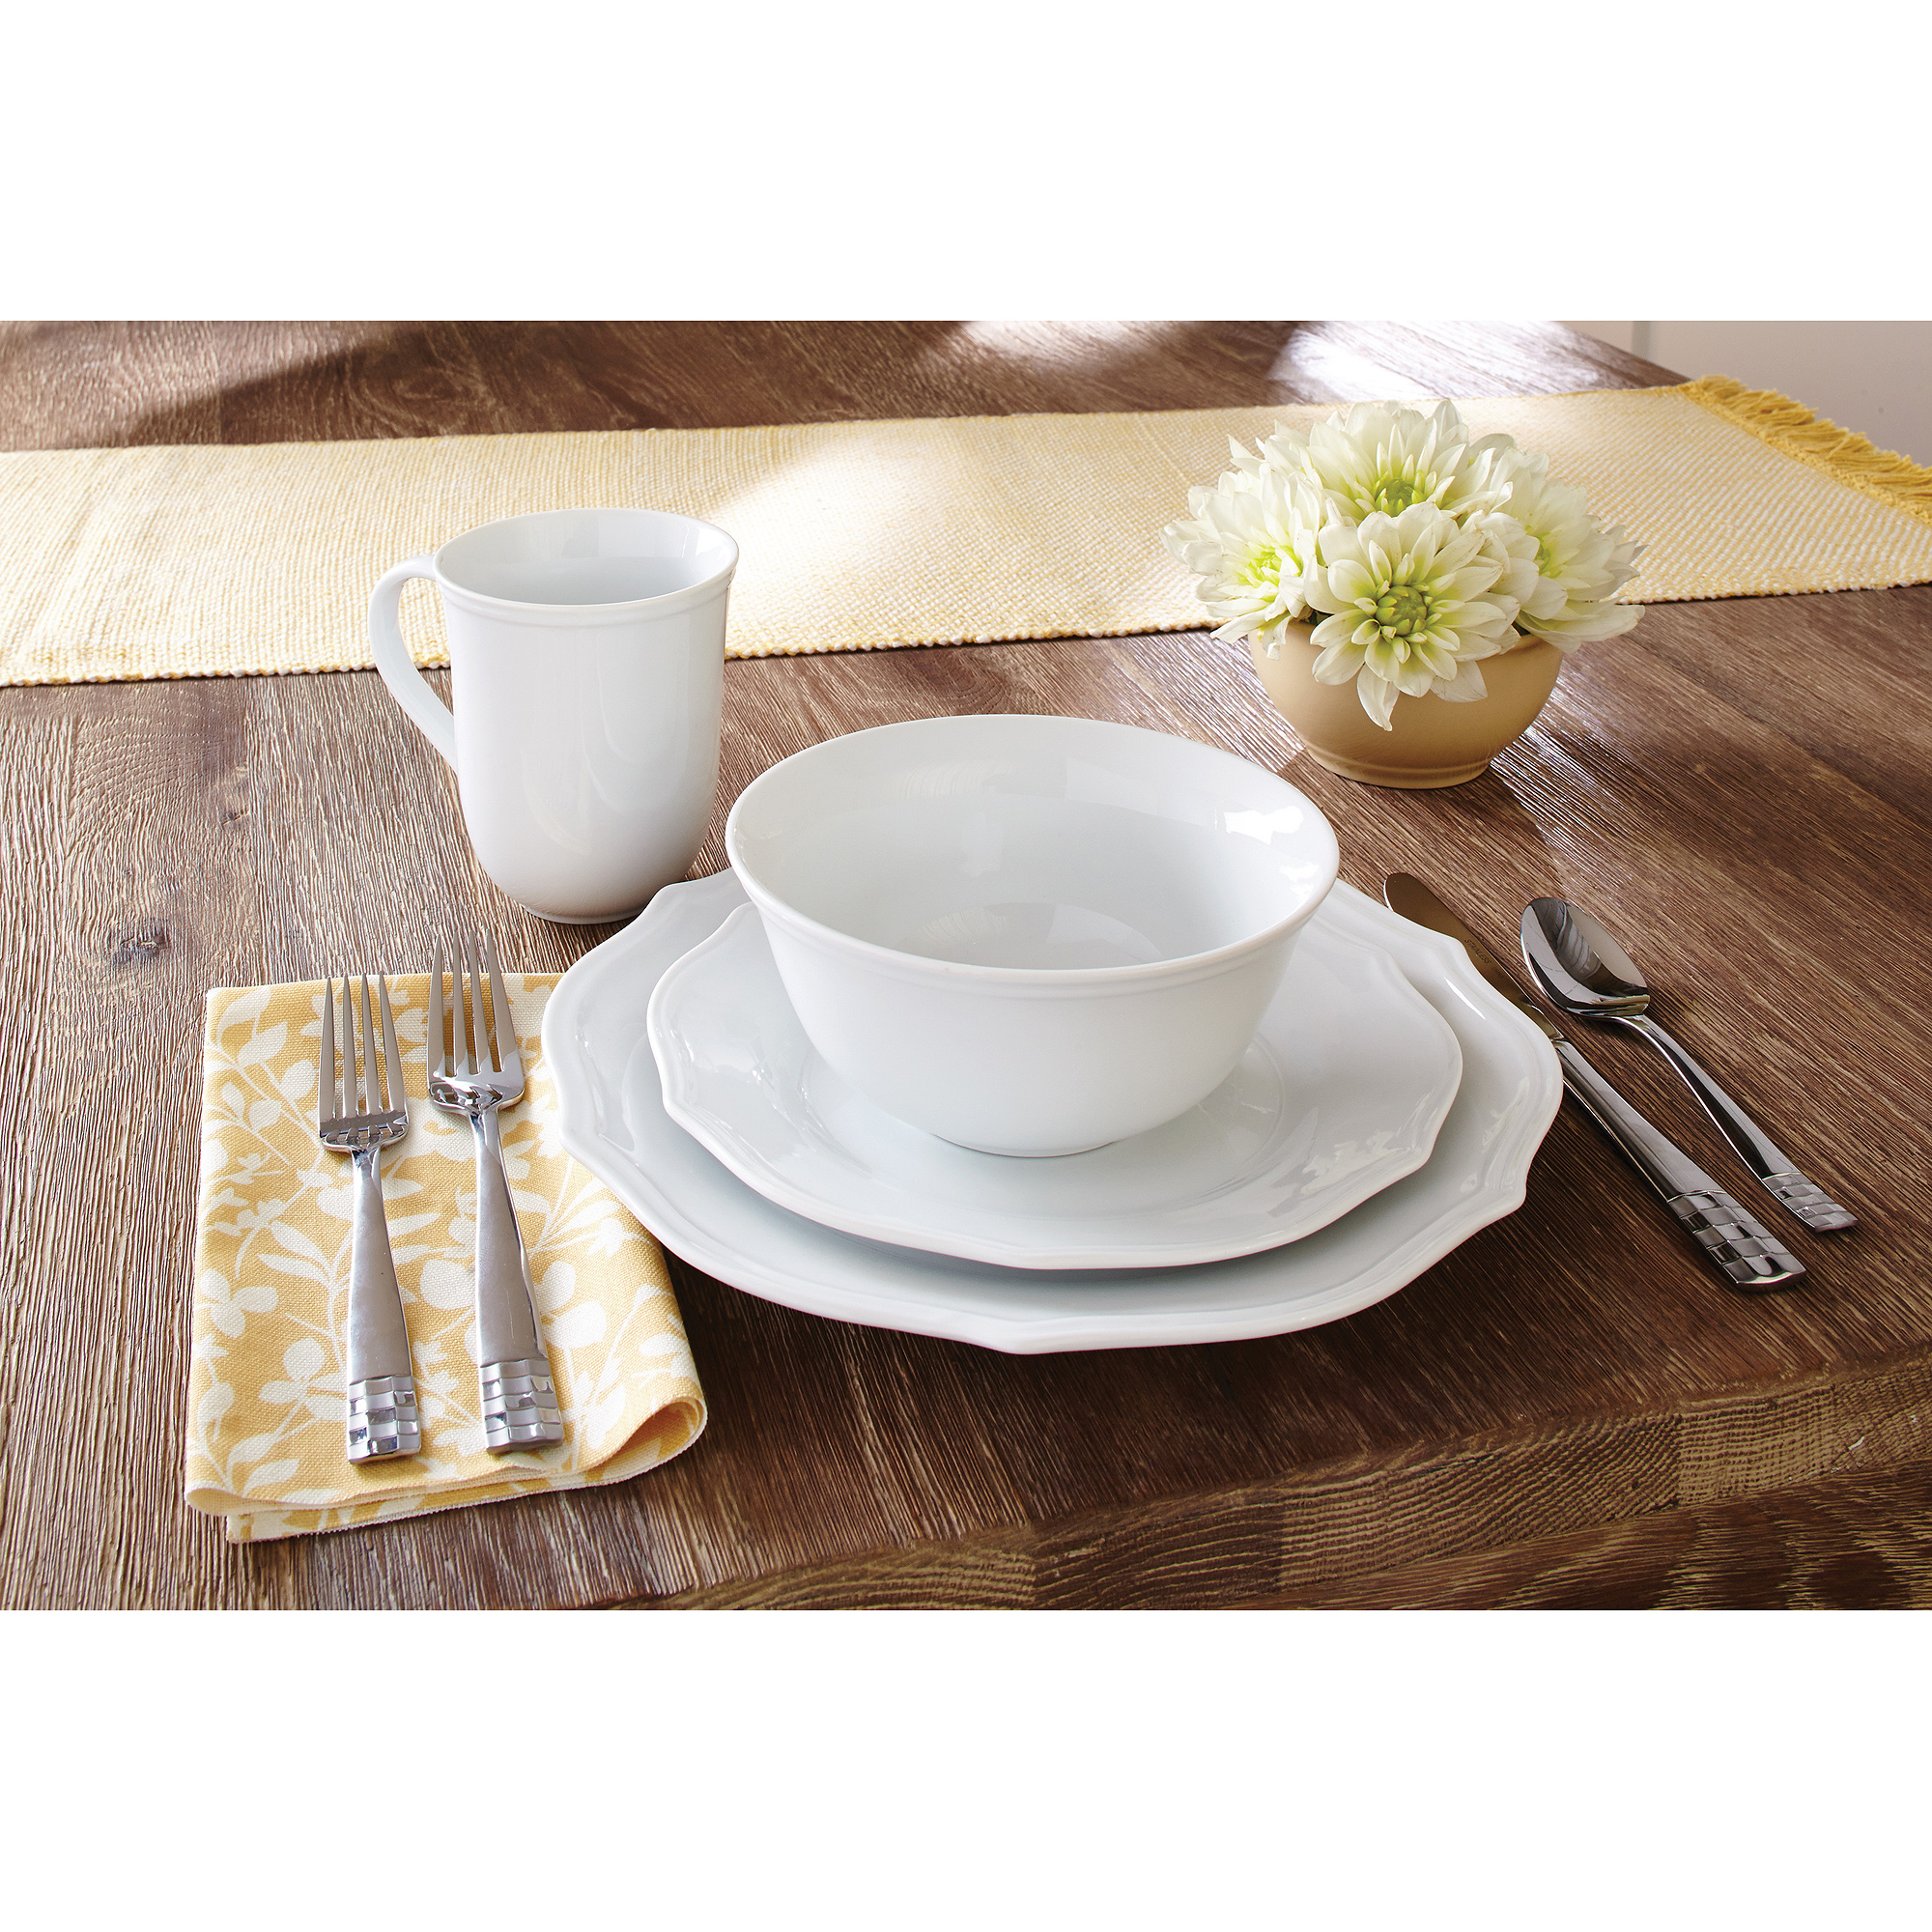 Gibson Home Liberty Hill 30 Piece Dinnerware Set, White   Walmart.com